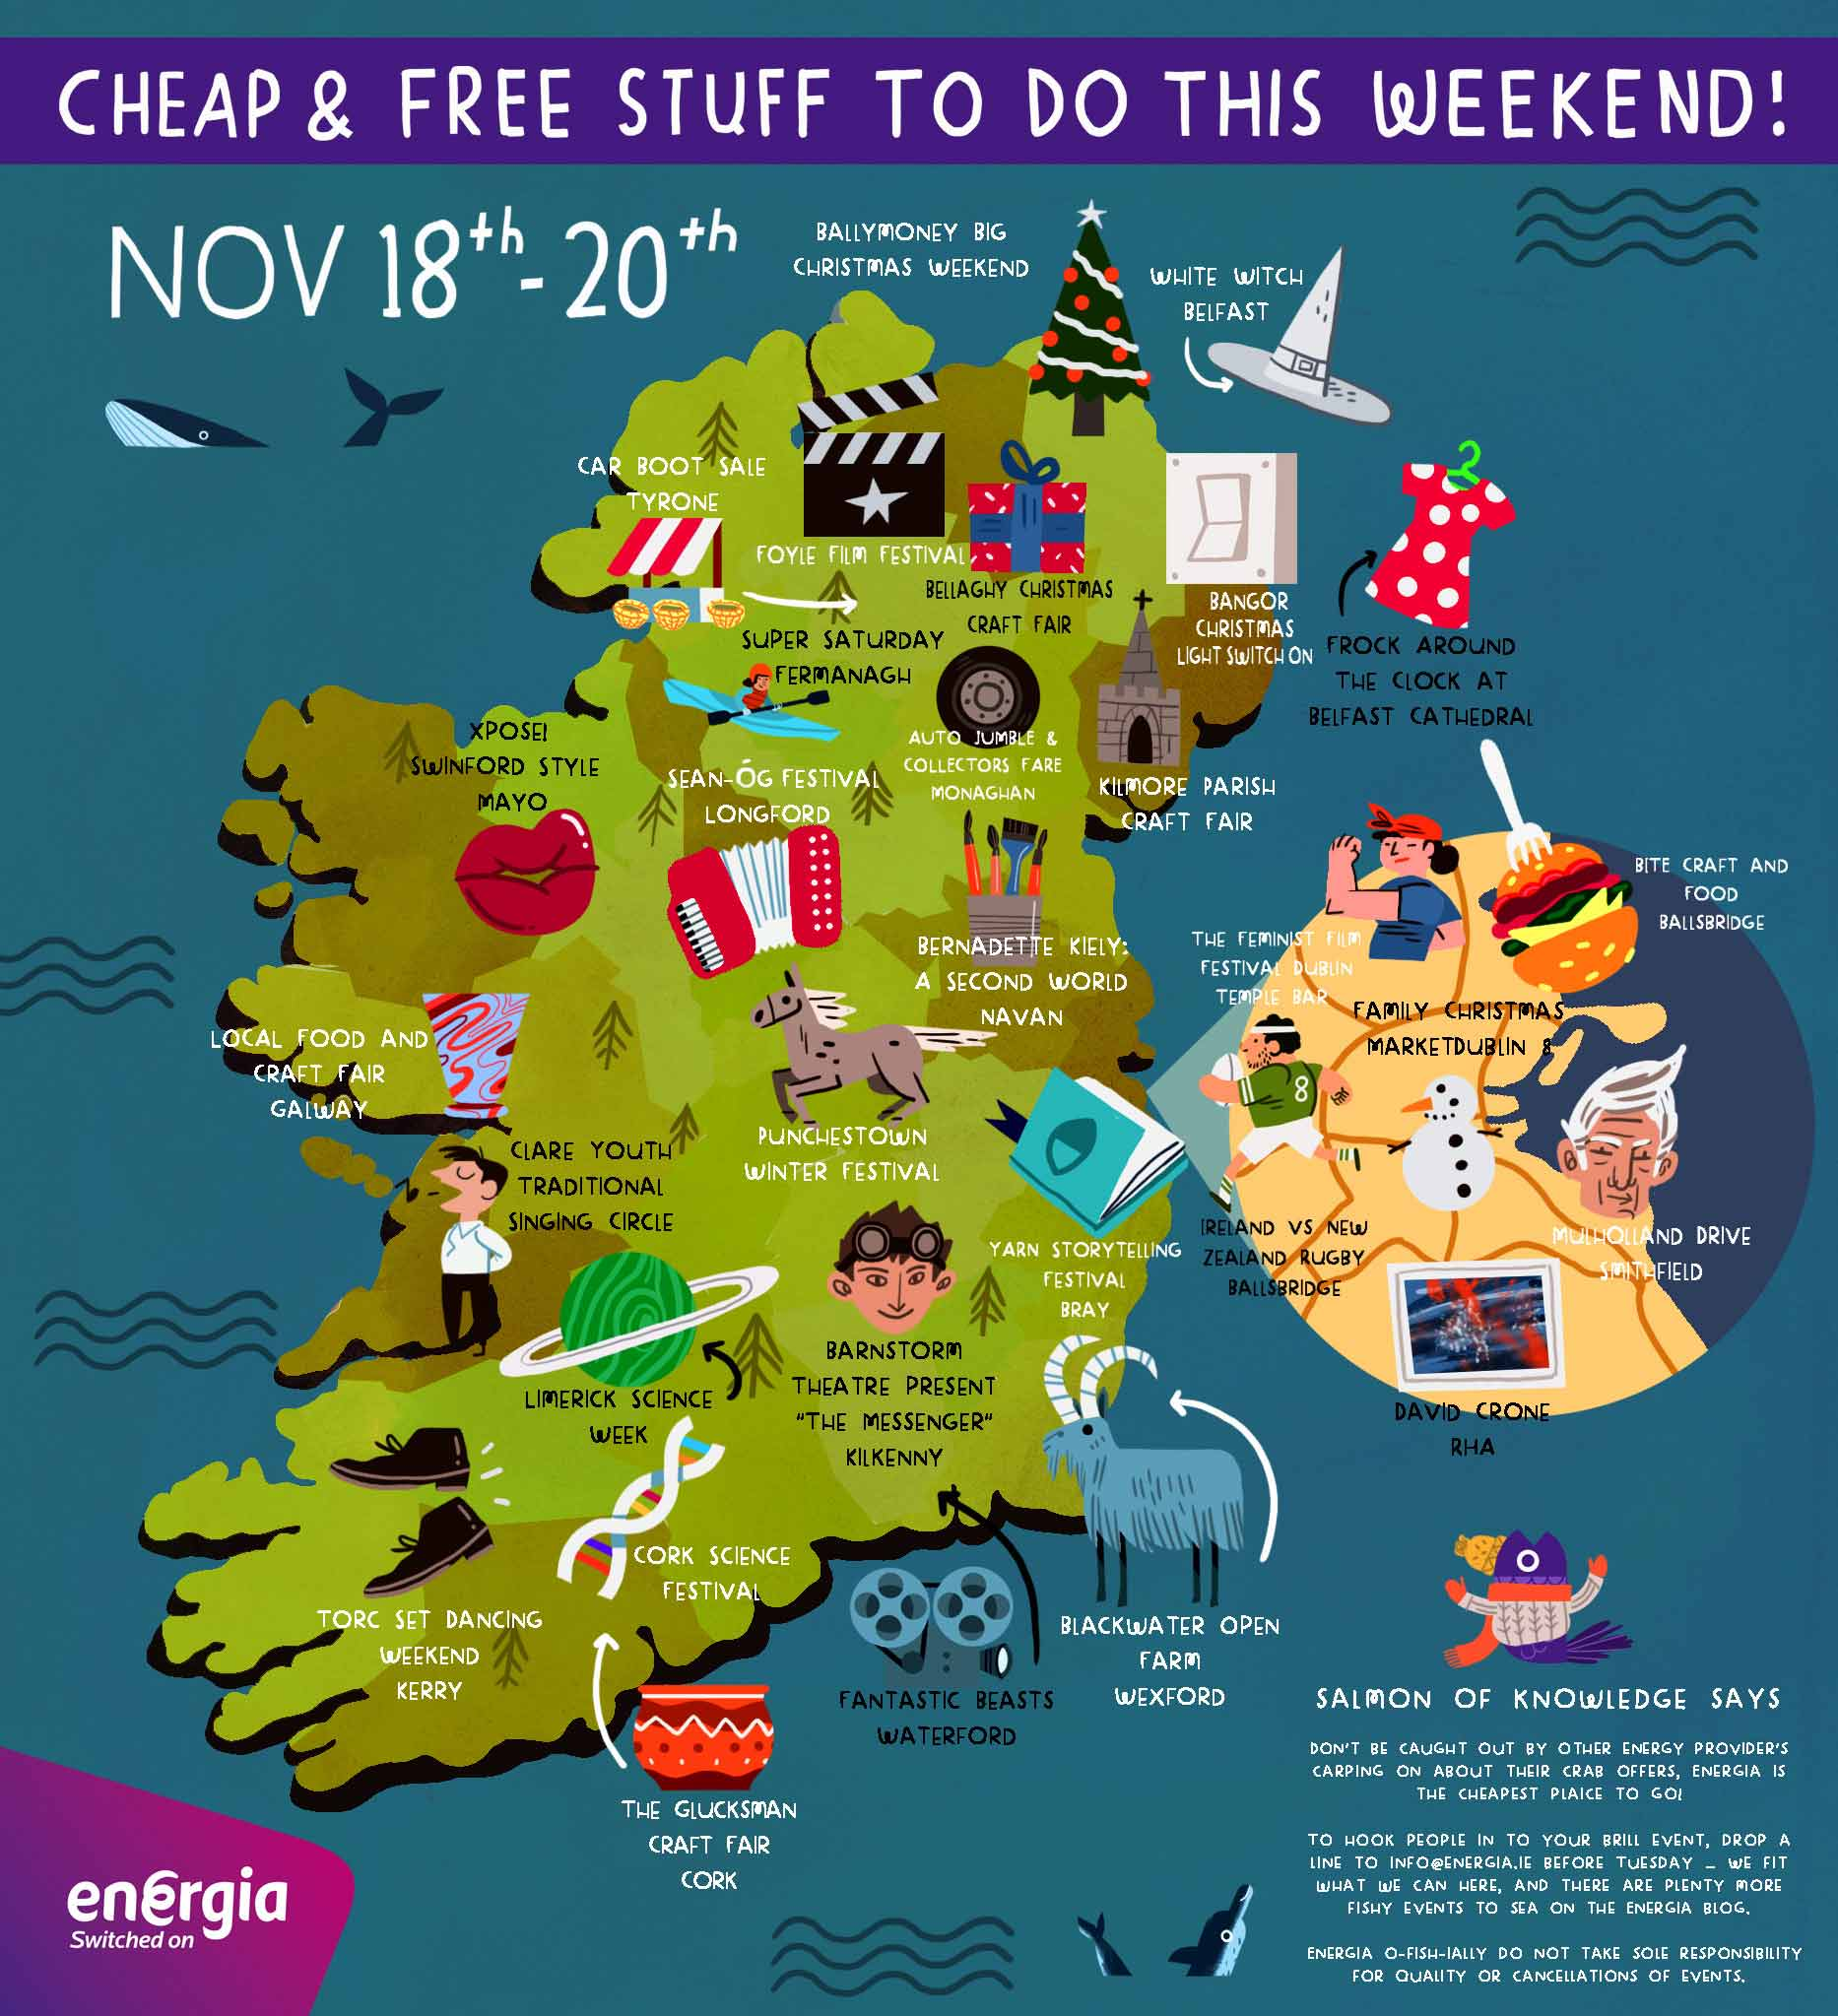 Cheap & Free stuff to do this weekend 18th - 20th November